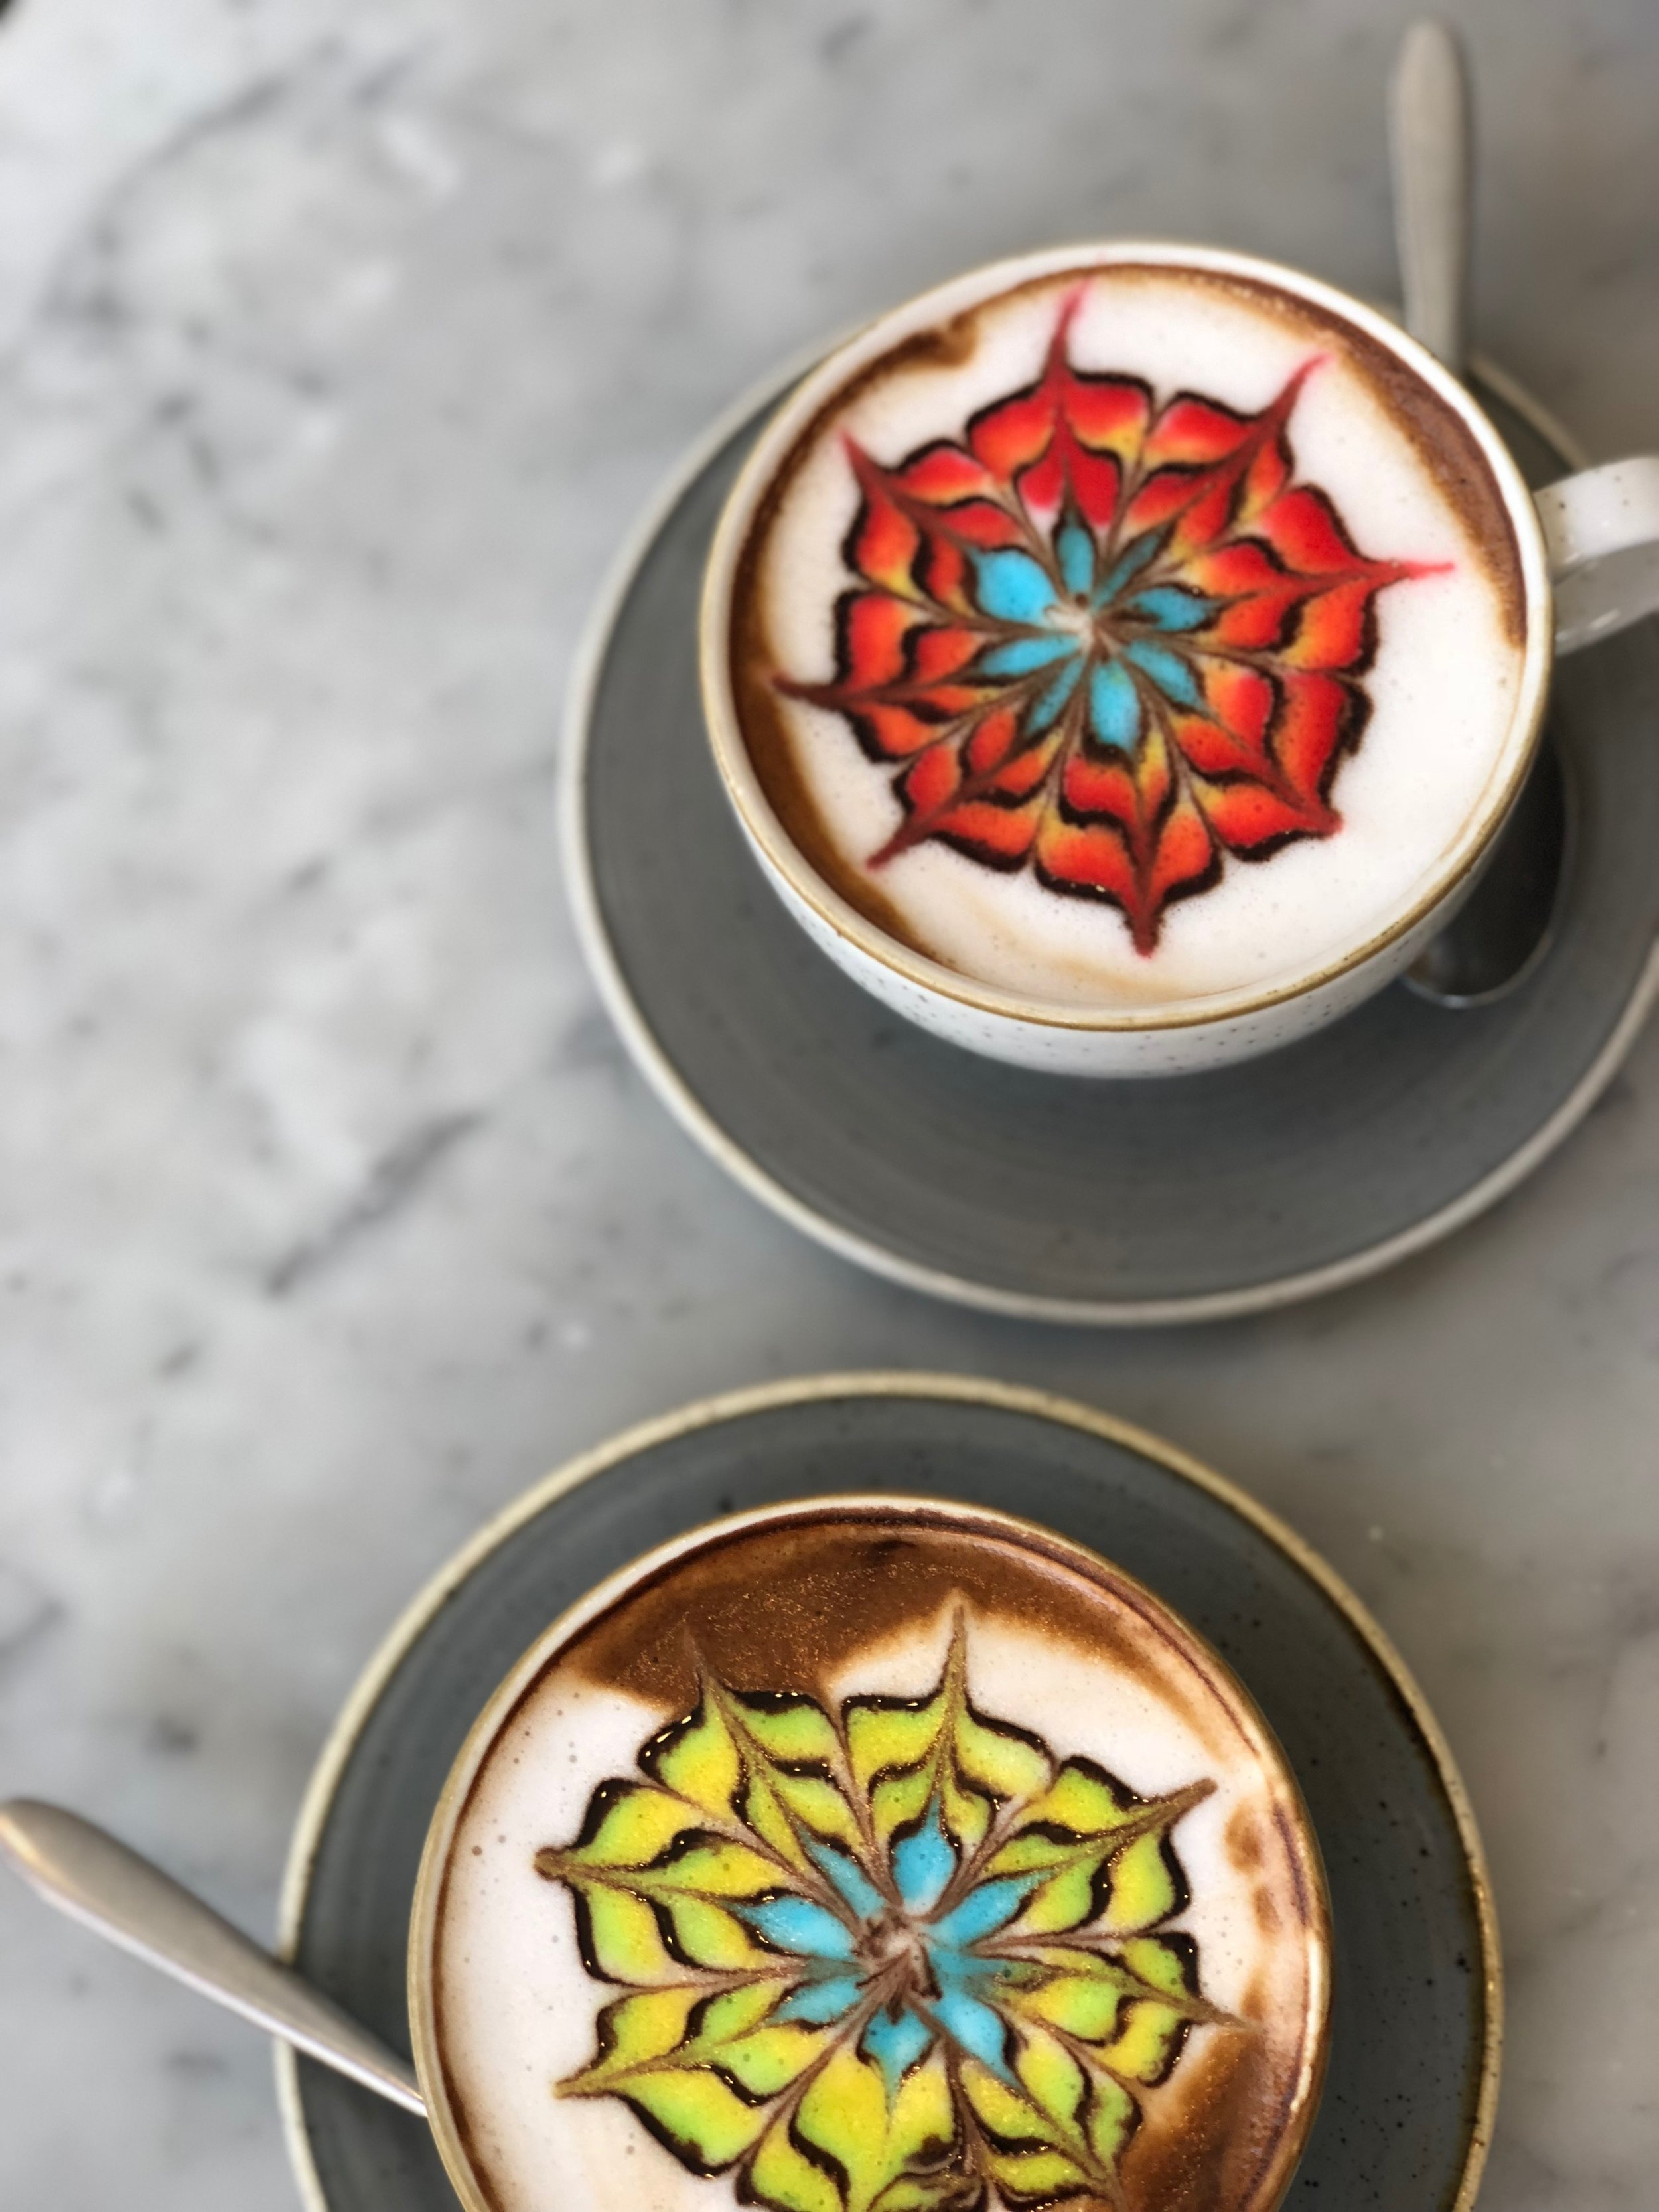 The best part is that these beautiful babies taste as delicious as they look. - If you're in need of a major caffeine hit, stick with a cold brew for that proper slap in the face but if your at all a latte lover, the Colorburst is certainly worth a try. We opted for almond milk, but you can also go with whole or non-fat.